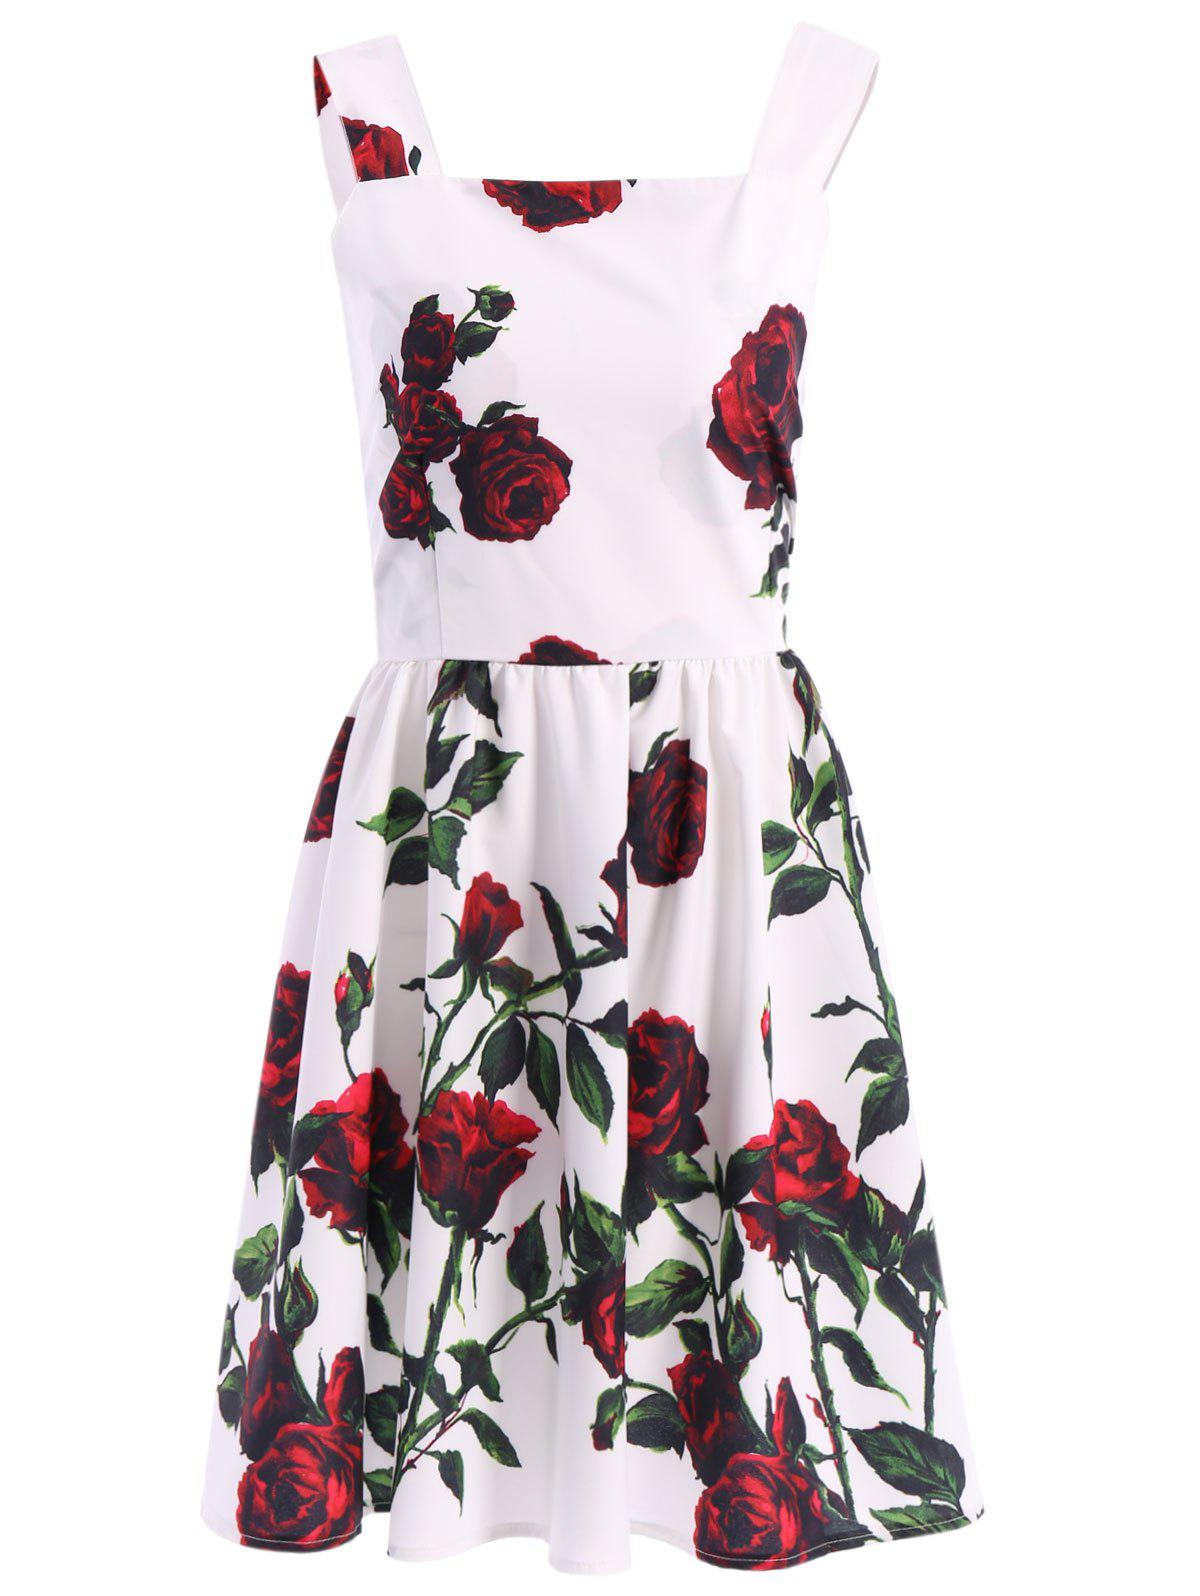 Vintage Sleeveless Square Neck Floral Print Women's Dress - WHITE L